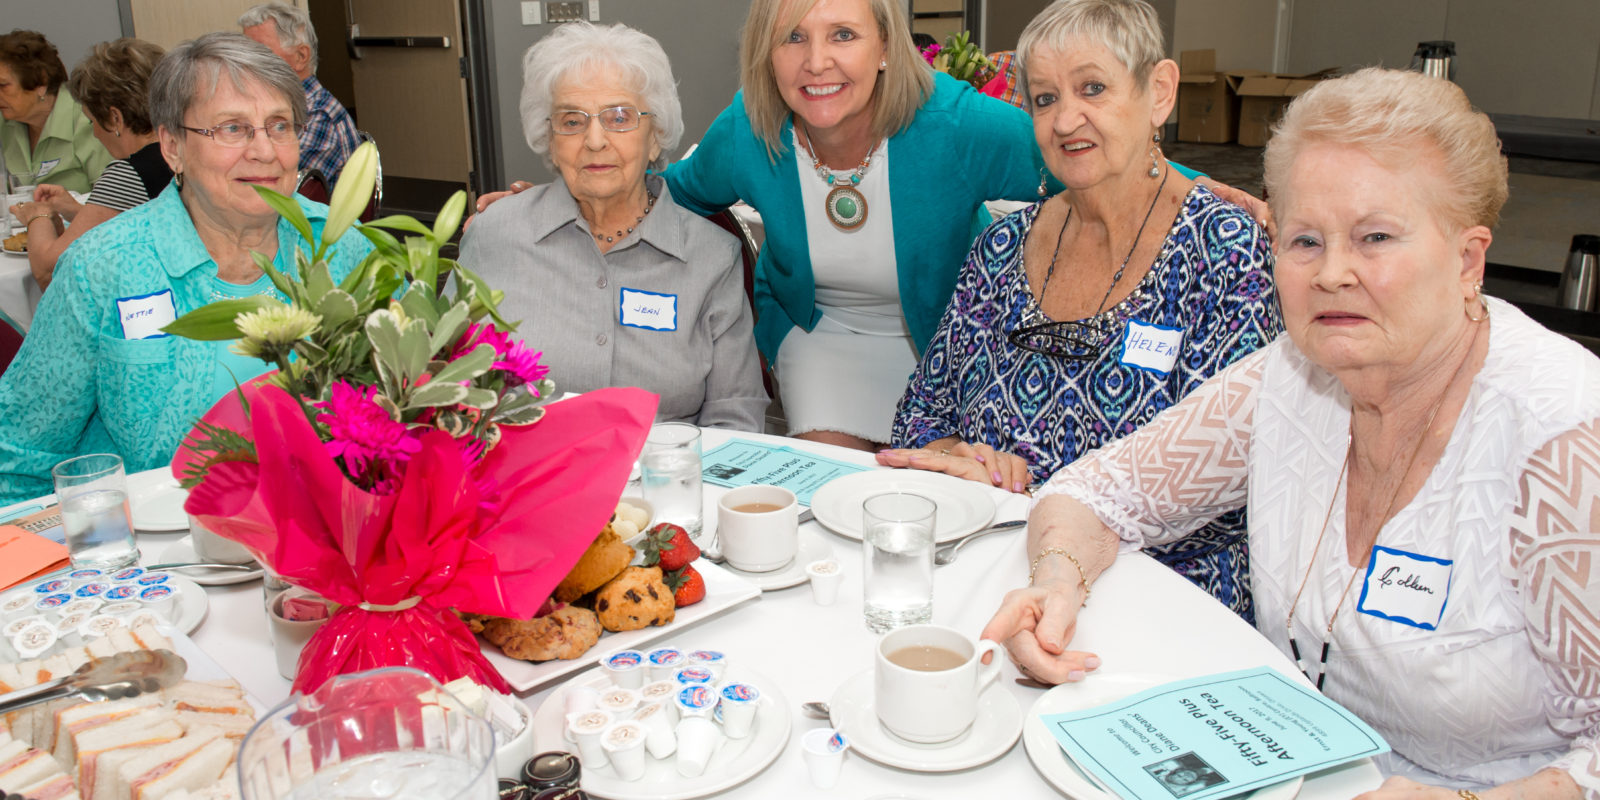 Councillor Deans' Annual 55+ Afternoon Tea